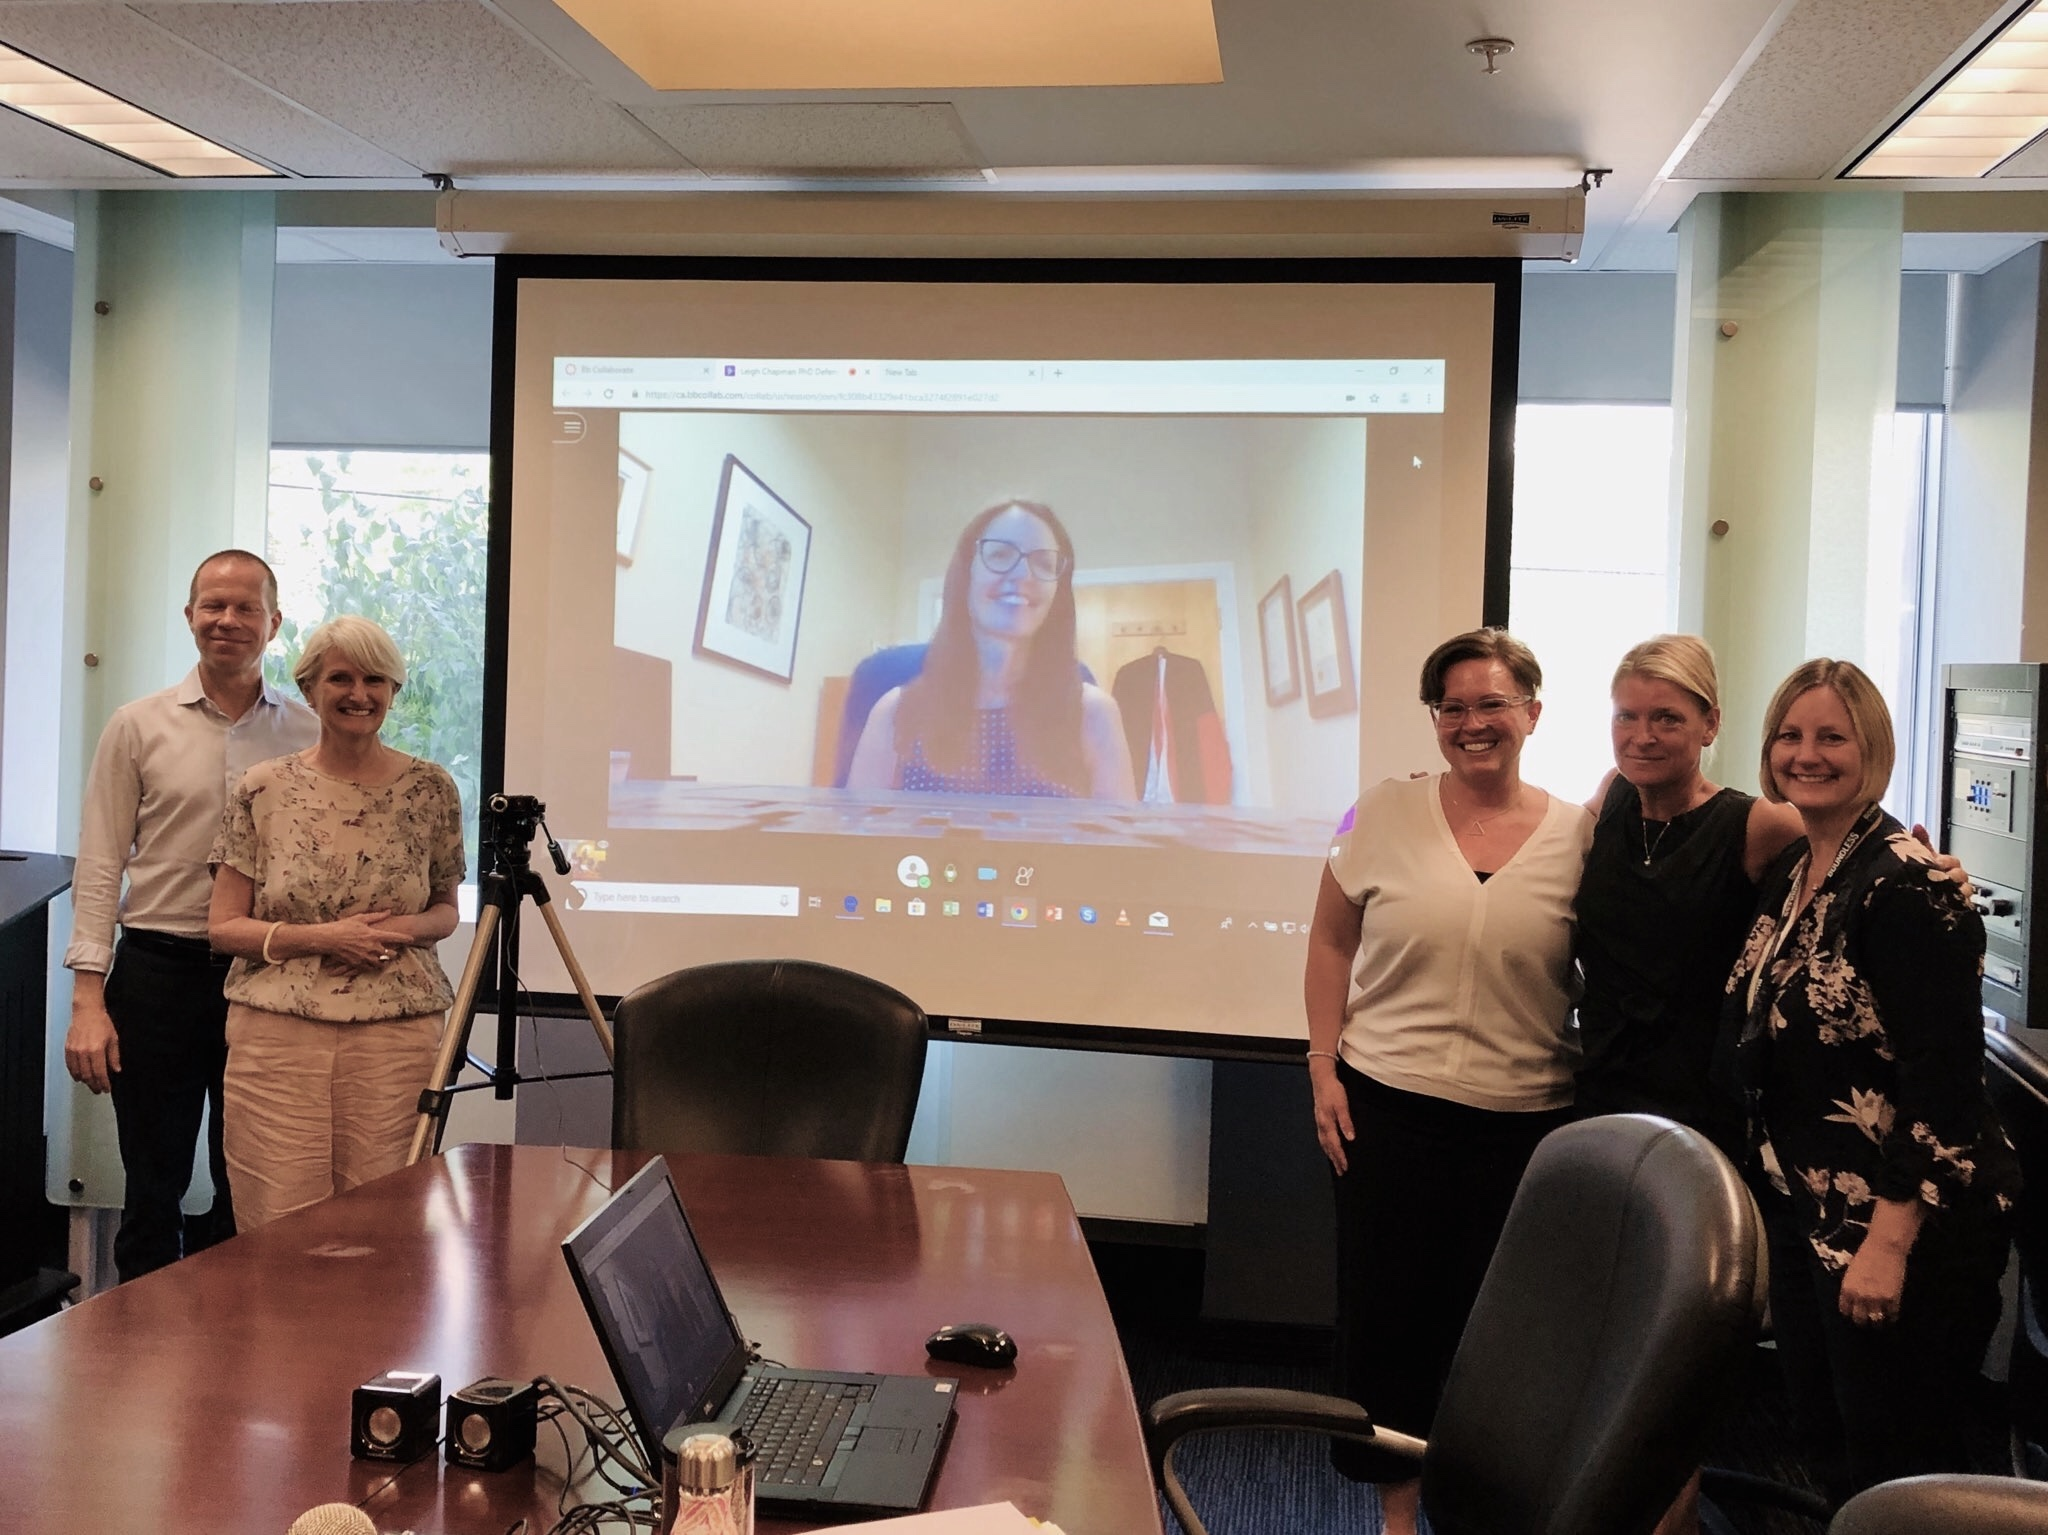 Dr. Brian Hodges, Dr. Sioban Nelson, Dr. Sheri Price, Dr. Leigh Chapman, Dr. Lianne Jeffs, and Dr. Lisa Cranley. Dr. Elise Paradis on the phone from San Francisco!